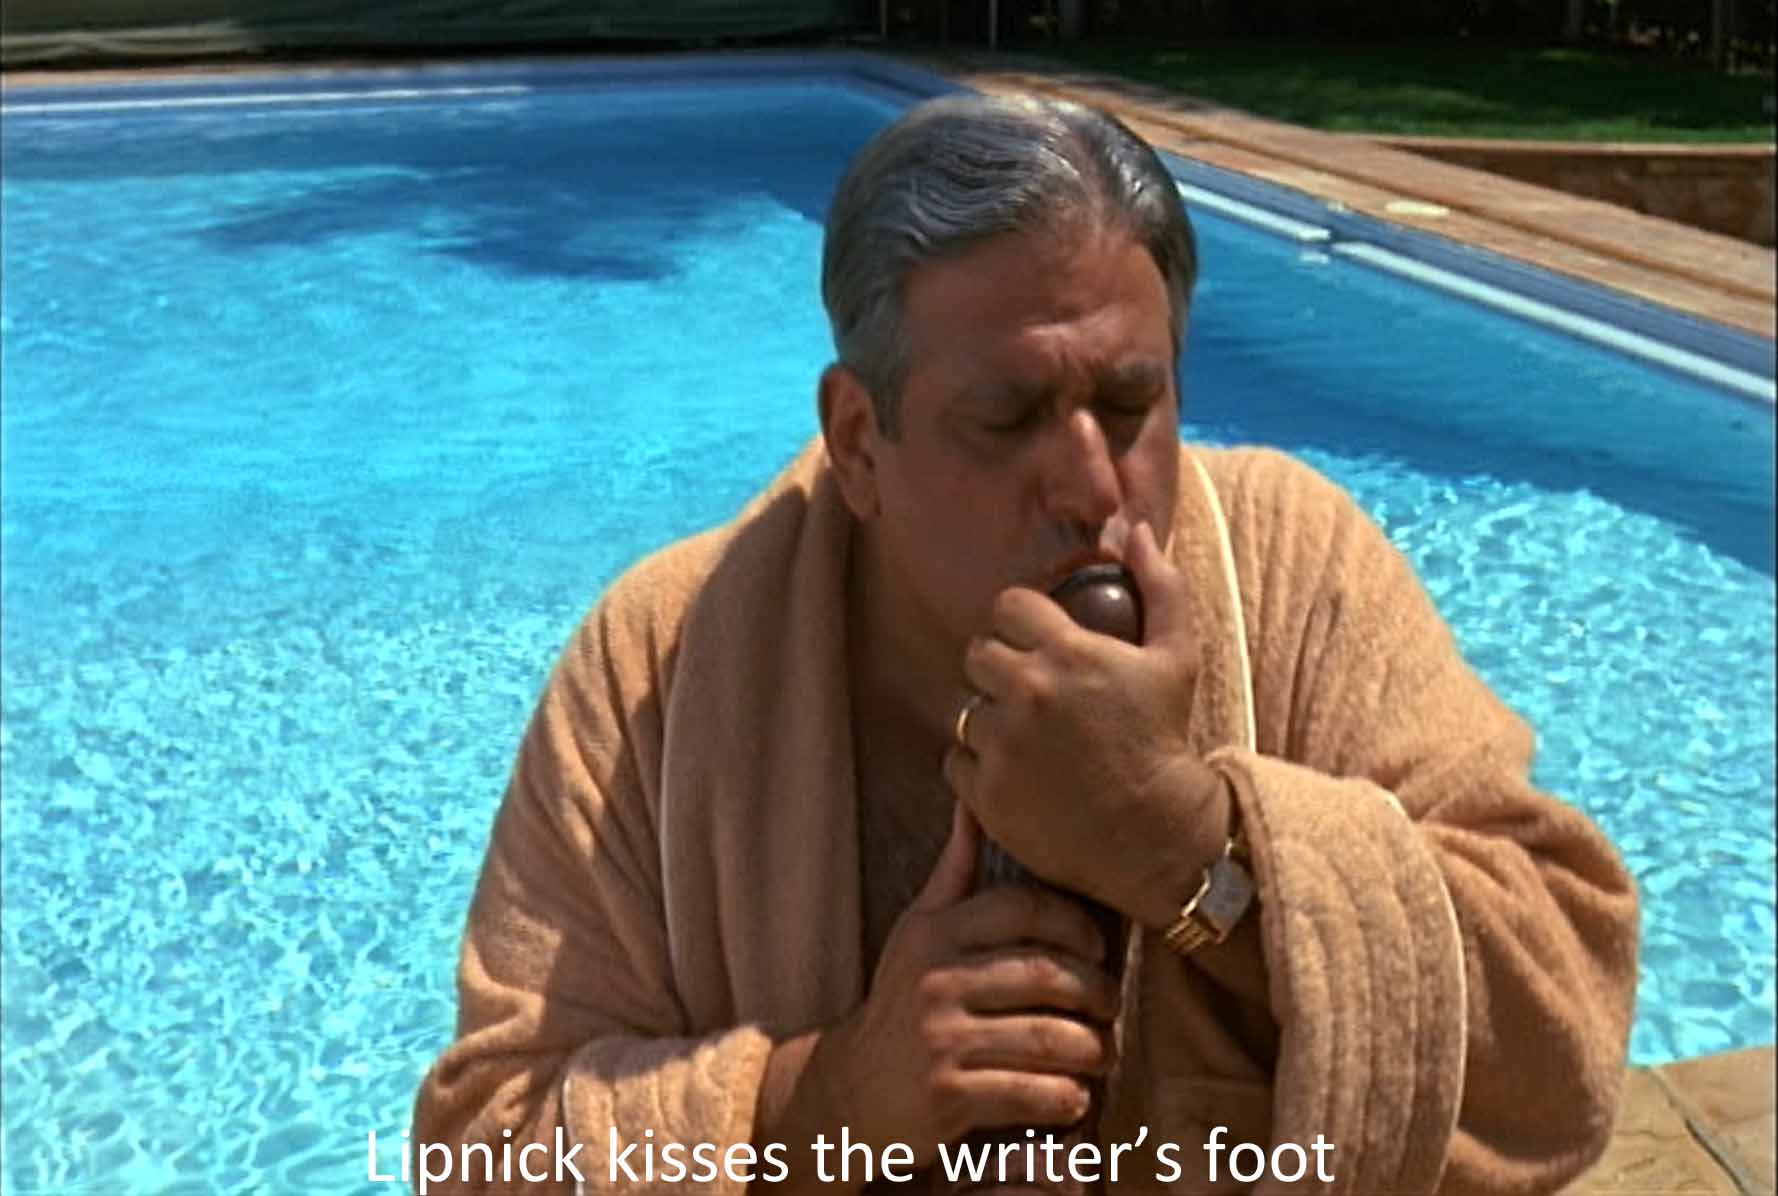 Lipnick kisses the writer's foot